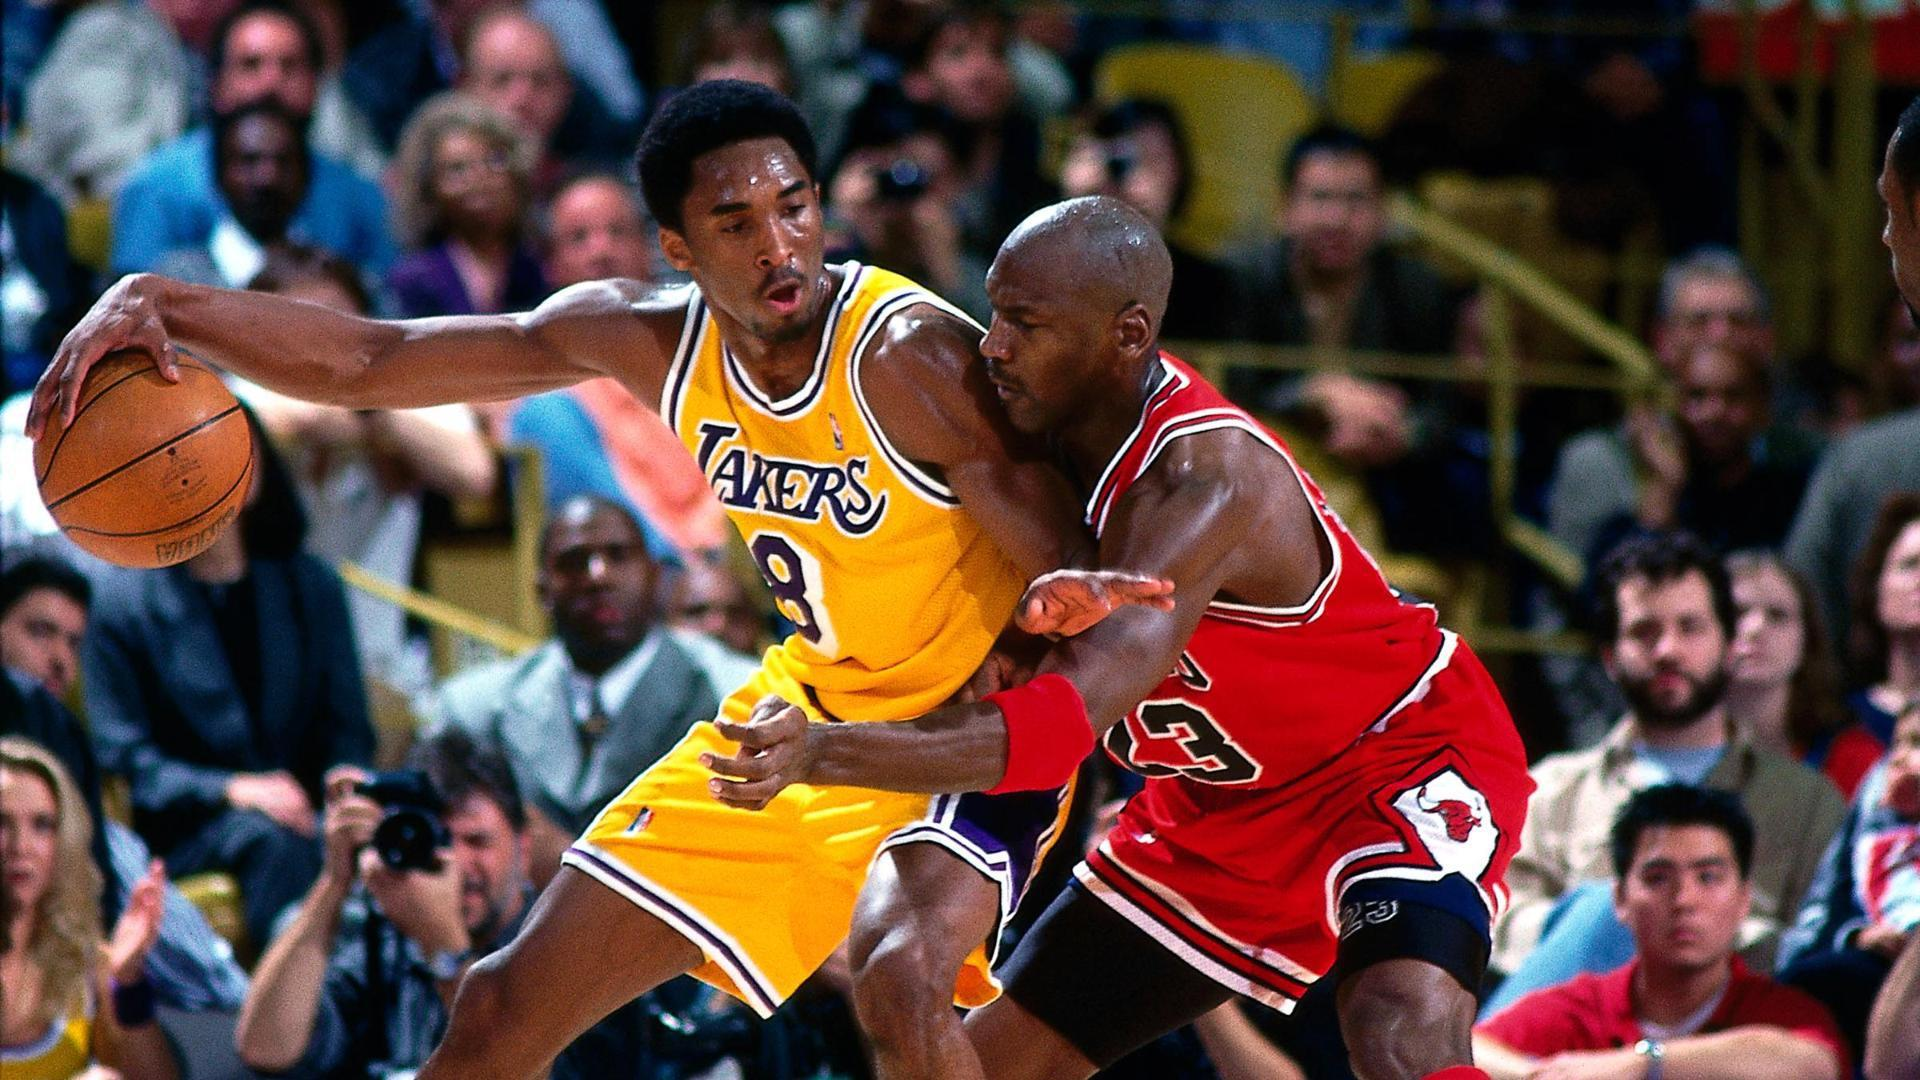 Kobe Vs Jordan Wallpapers Hd Wallpaper Cave